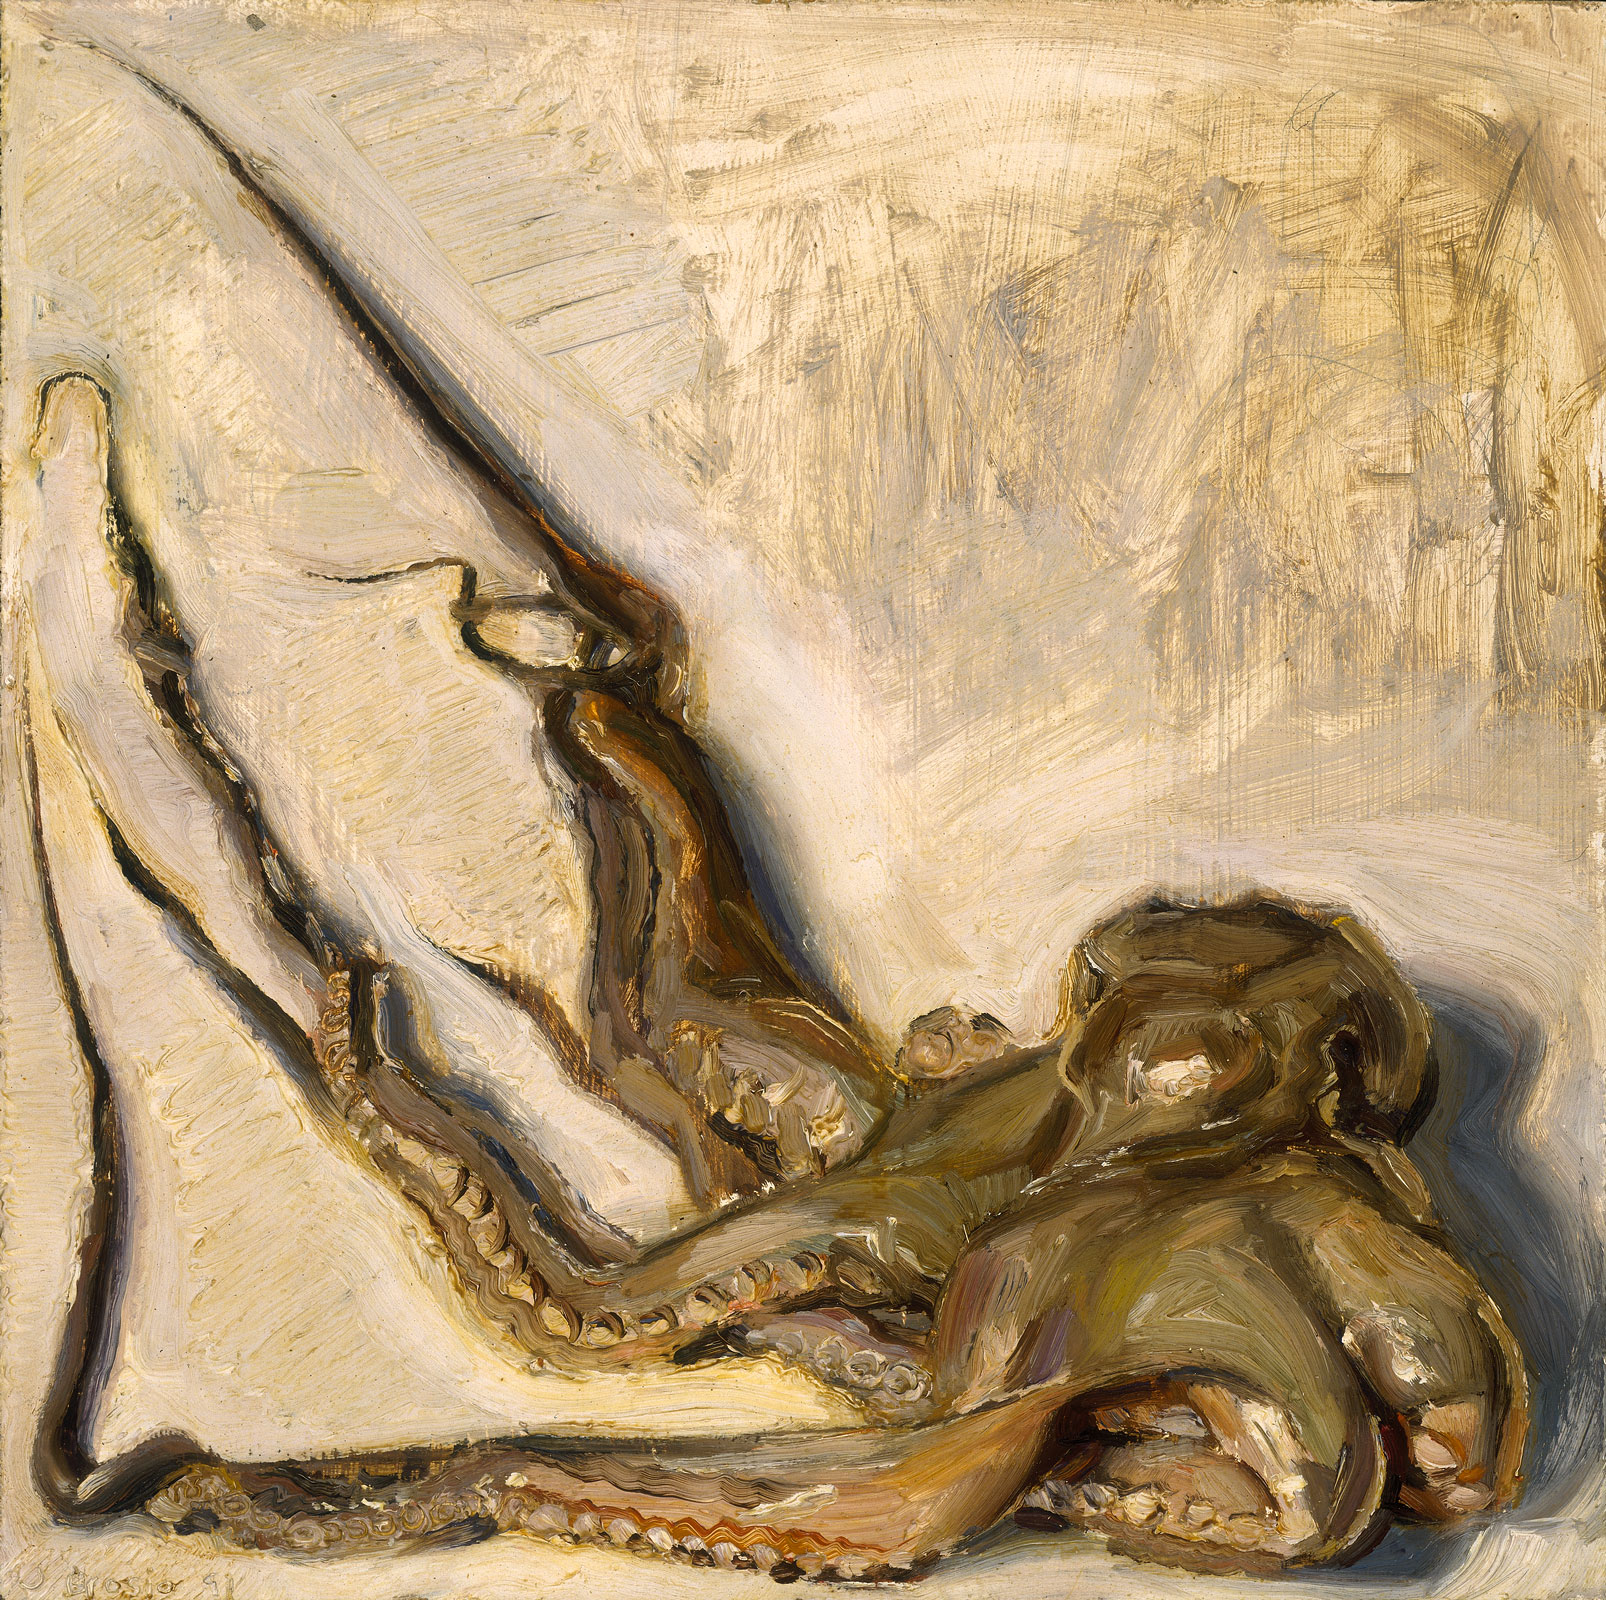 Octopus, 15 x 15, oil on board, 1991